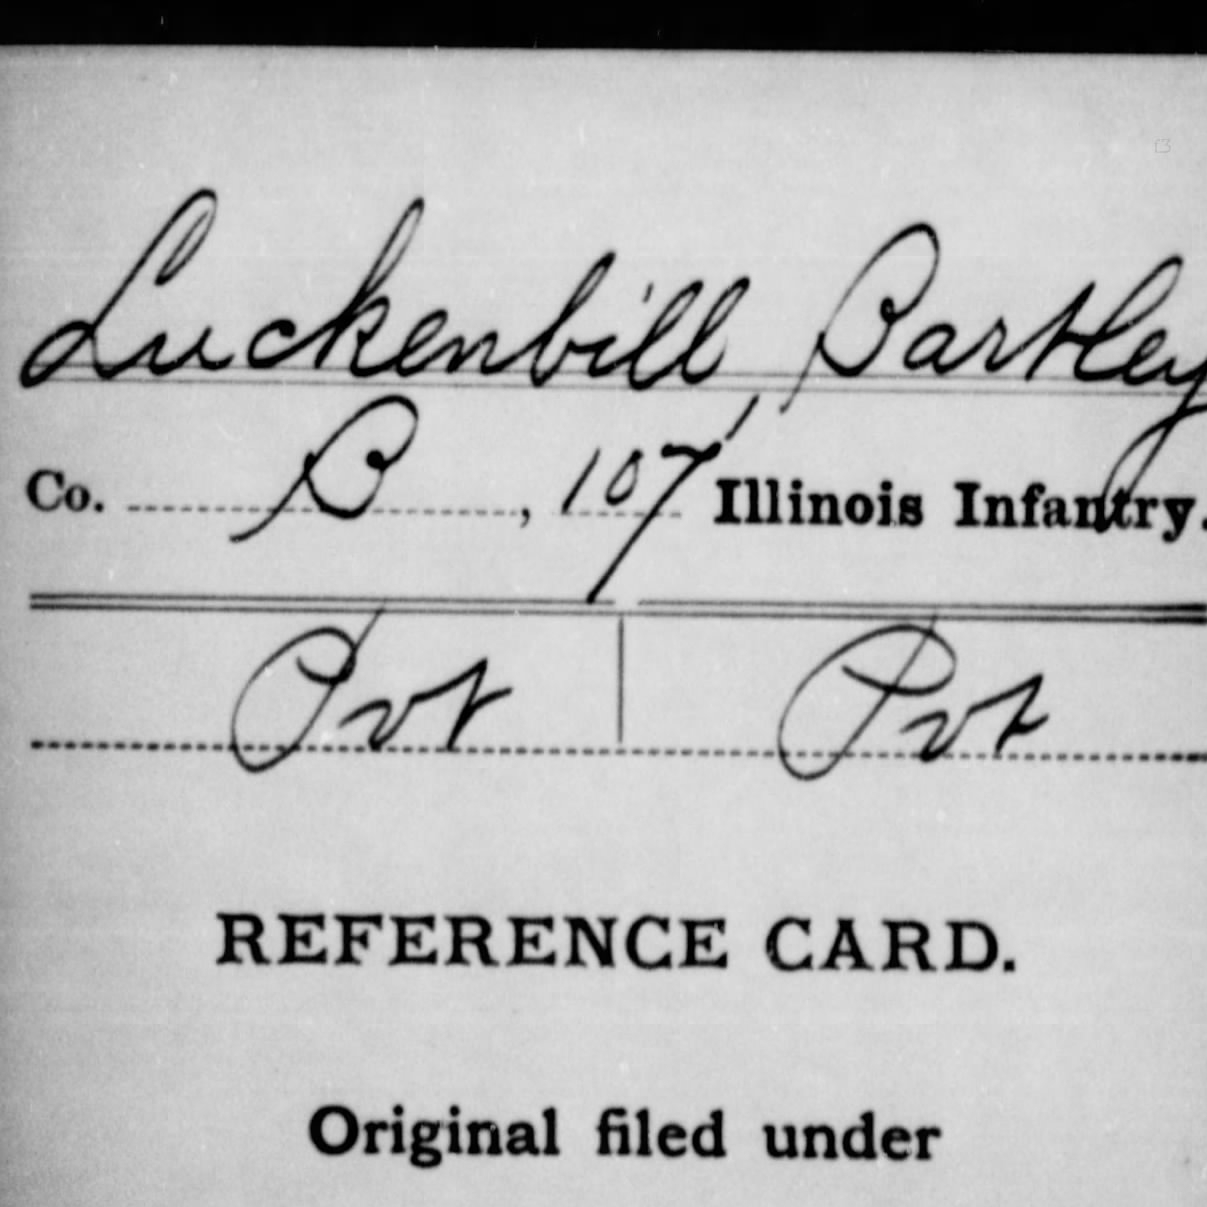 Pvt. Bartley Luckenbill, Co. B, 107th IL Infantry, USA